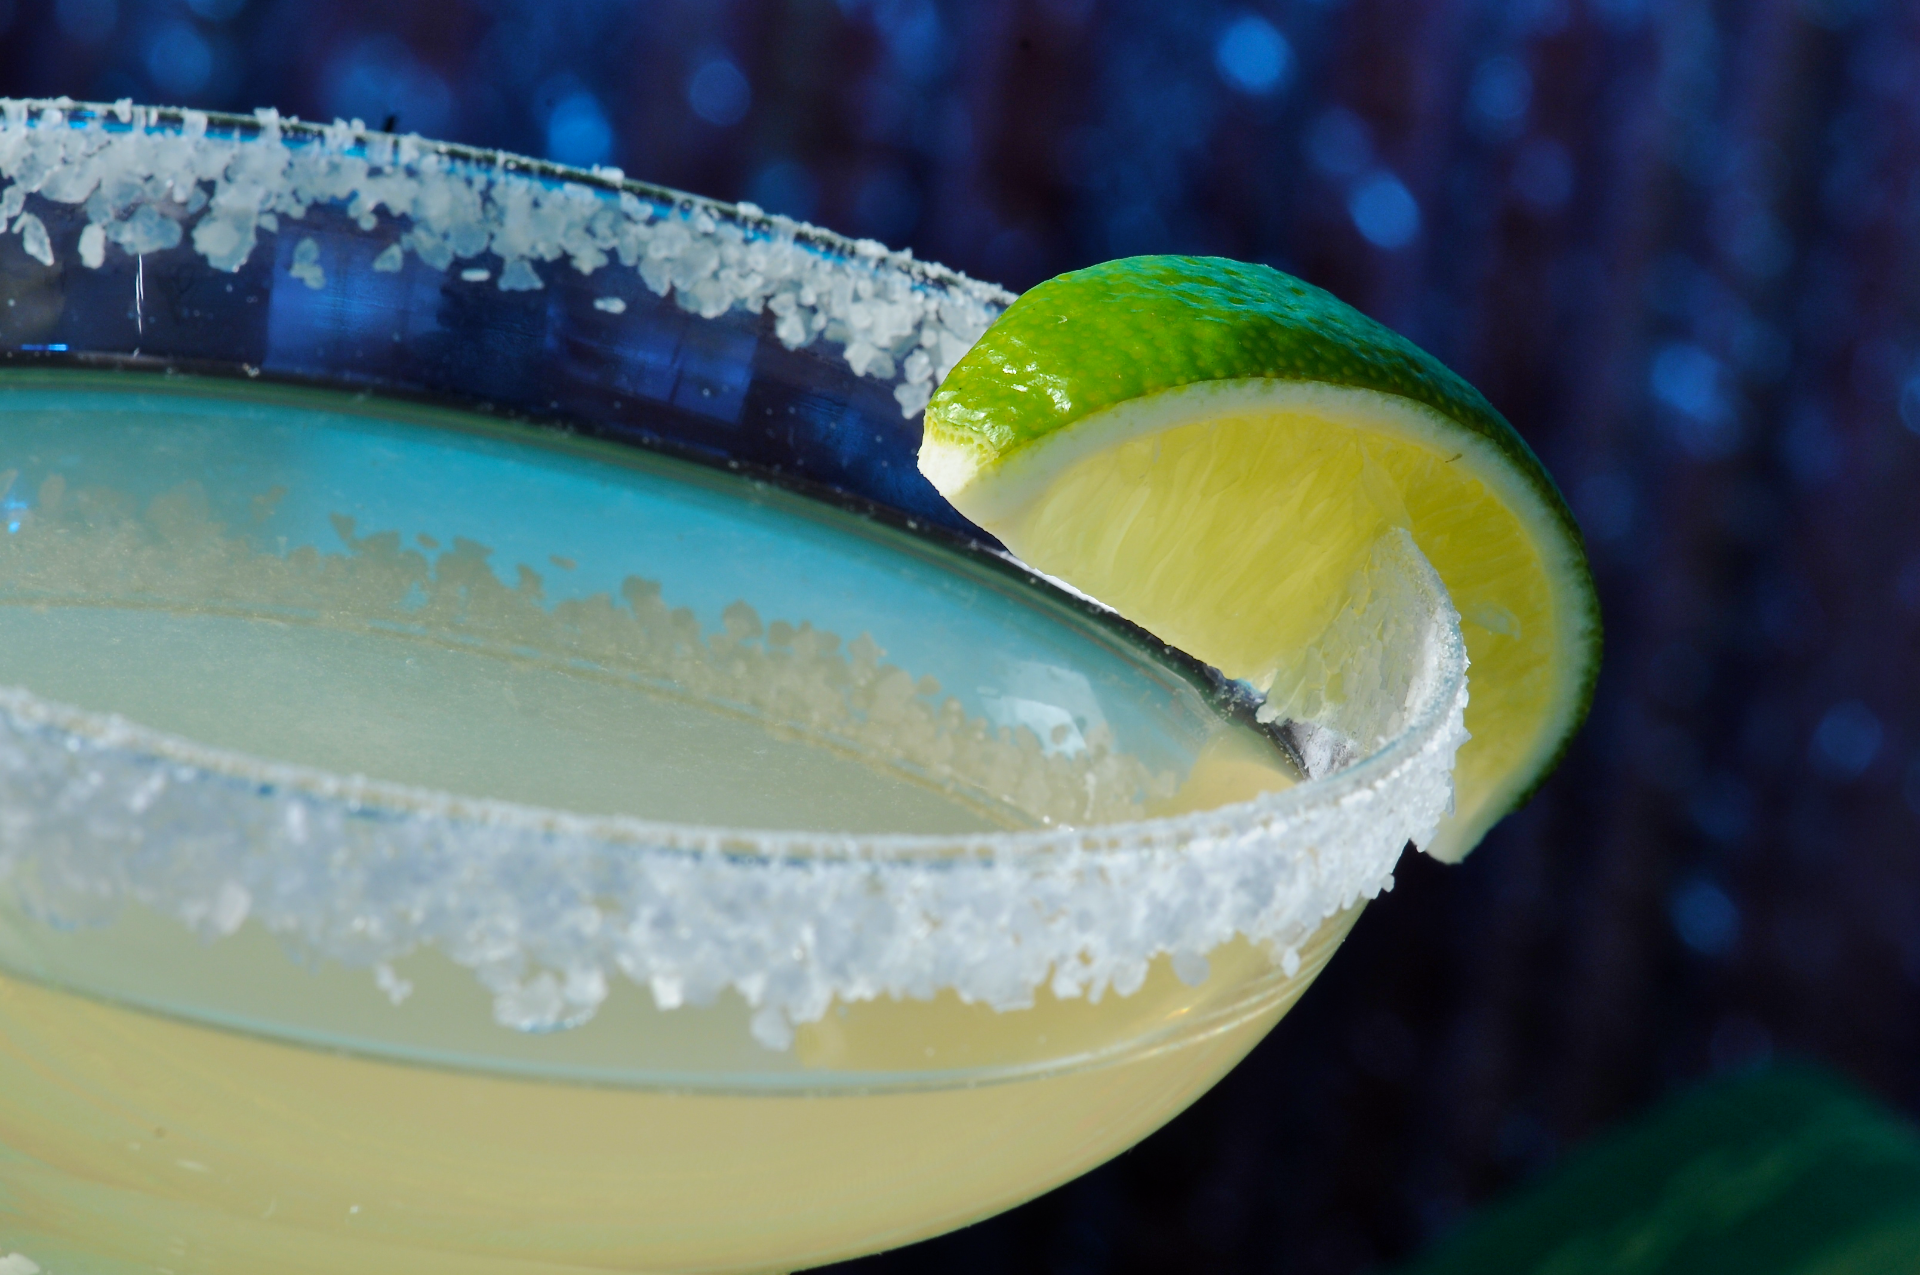 The margarita includes ingredients that should stimulate the four primary tastes: sweet, sour, salty and bitter. This recipe achieves a nice balance of these tastes.